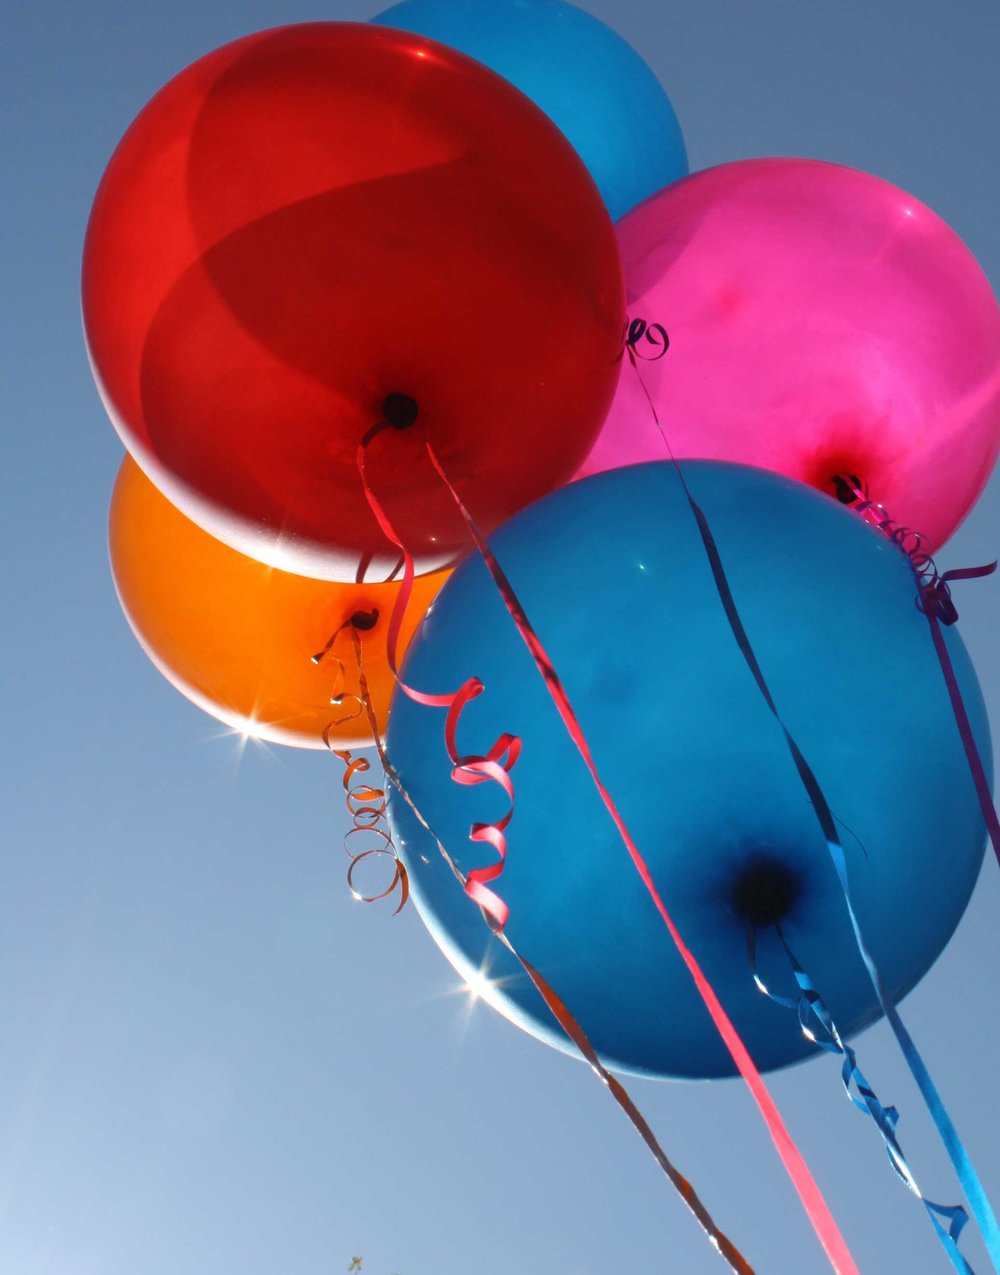 pg-34---Make-Waves---Carnival-Balloons_web.jpg